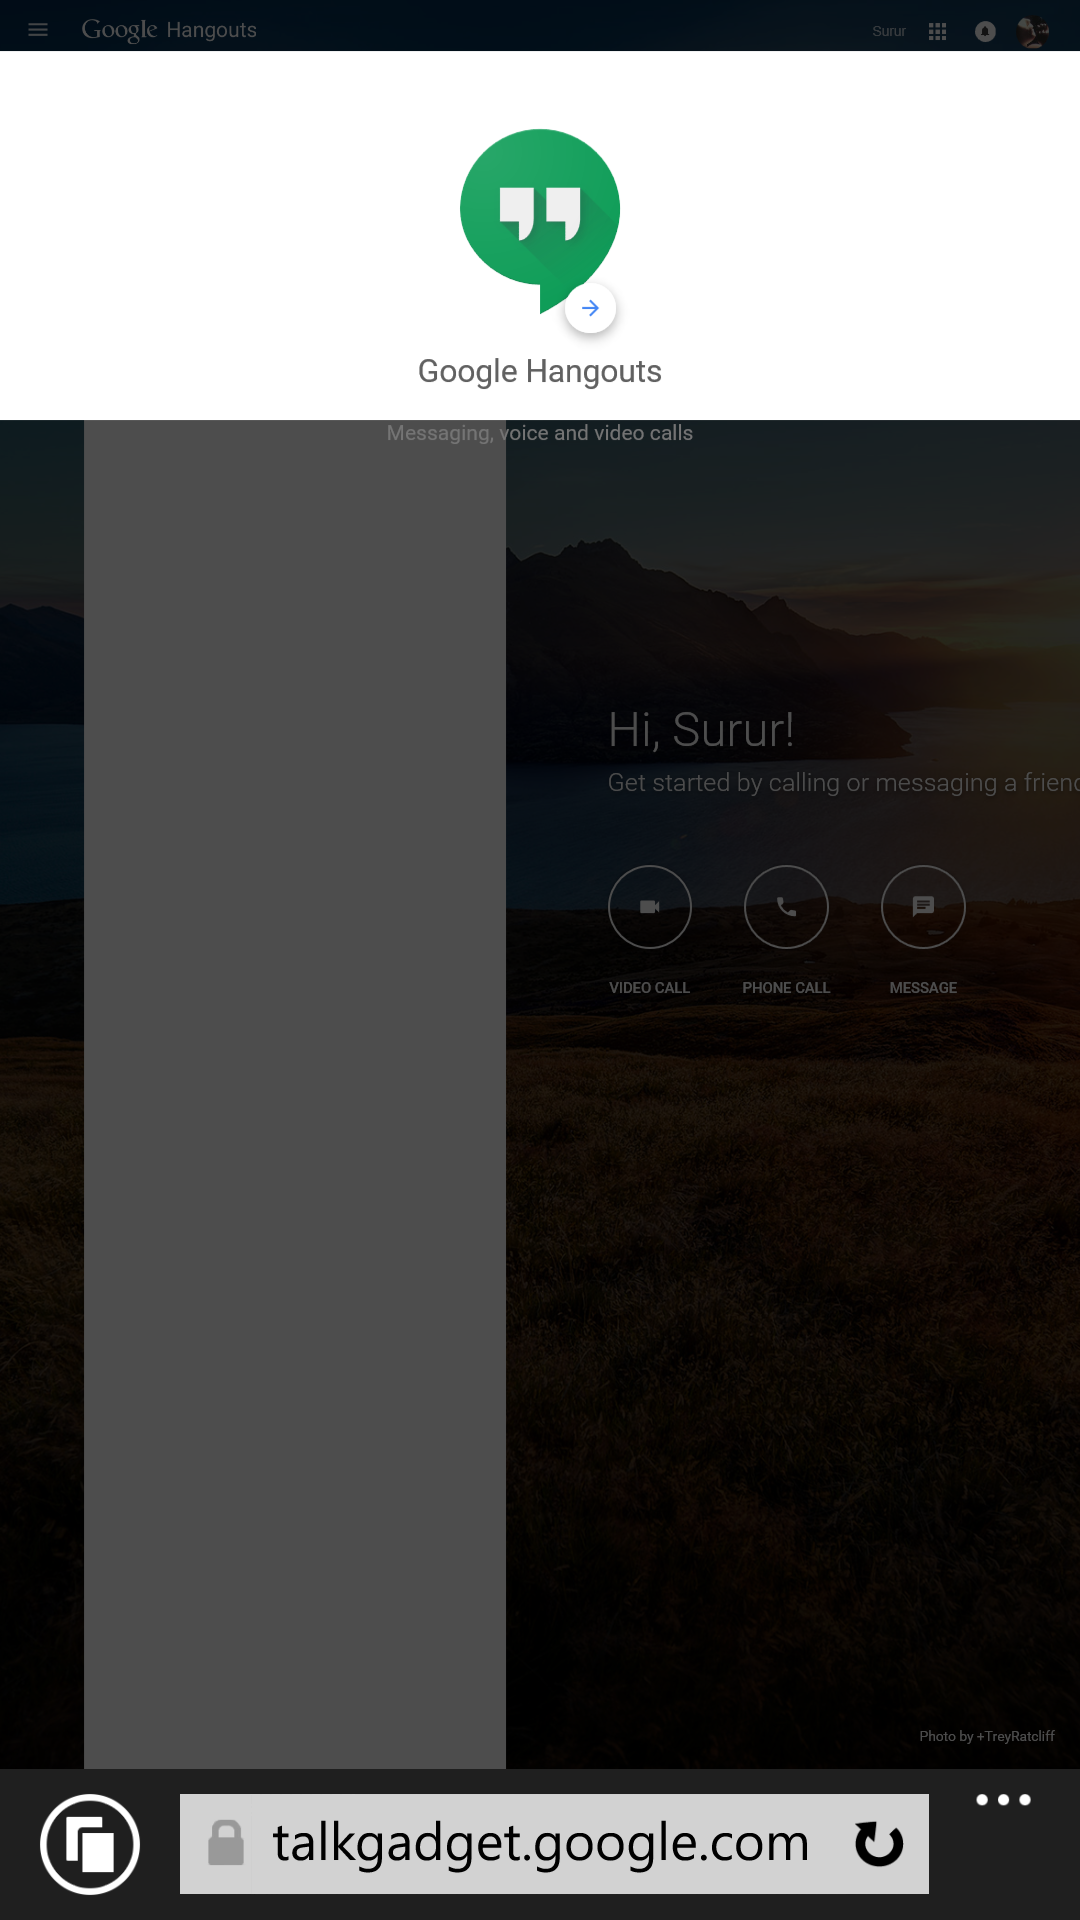 Google hangouts client for windows phone 8 - If you are desperate google hang outs web app works on windows phone for now